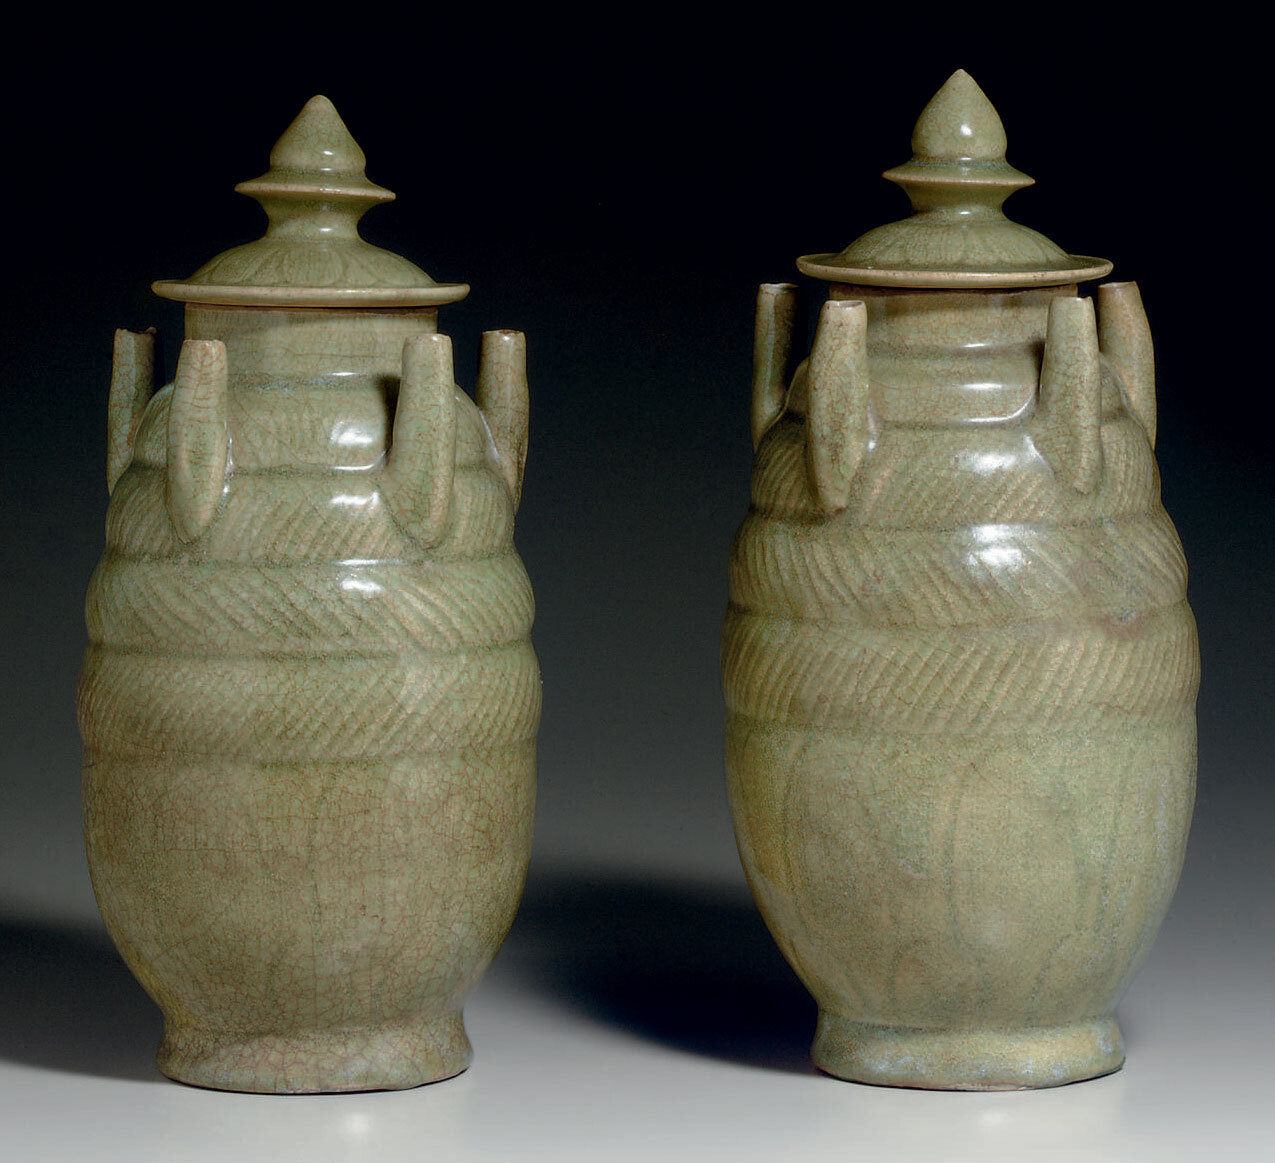 A pair of Zhejiang celadon carved five-spout jars and covers, Northern Song dynasty, 11th-12th century